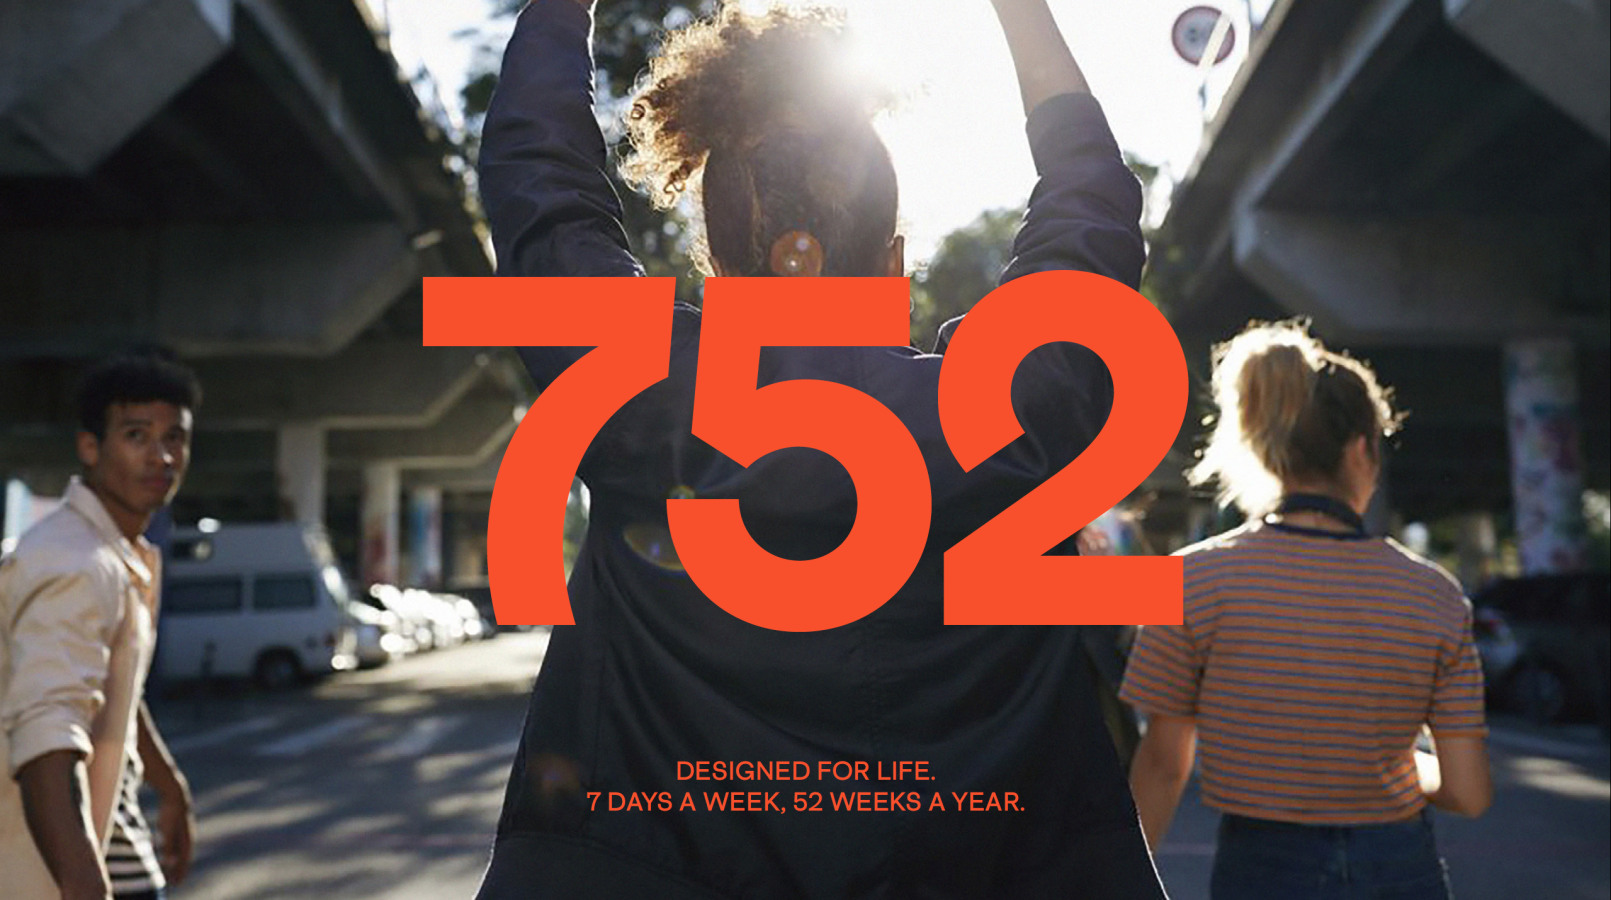 752 logo over layed on image of woman walking away with her hands in the air